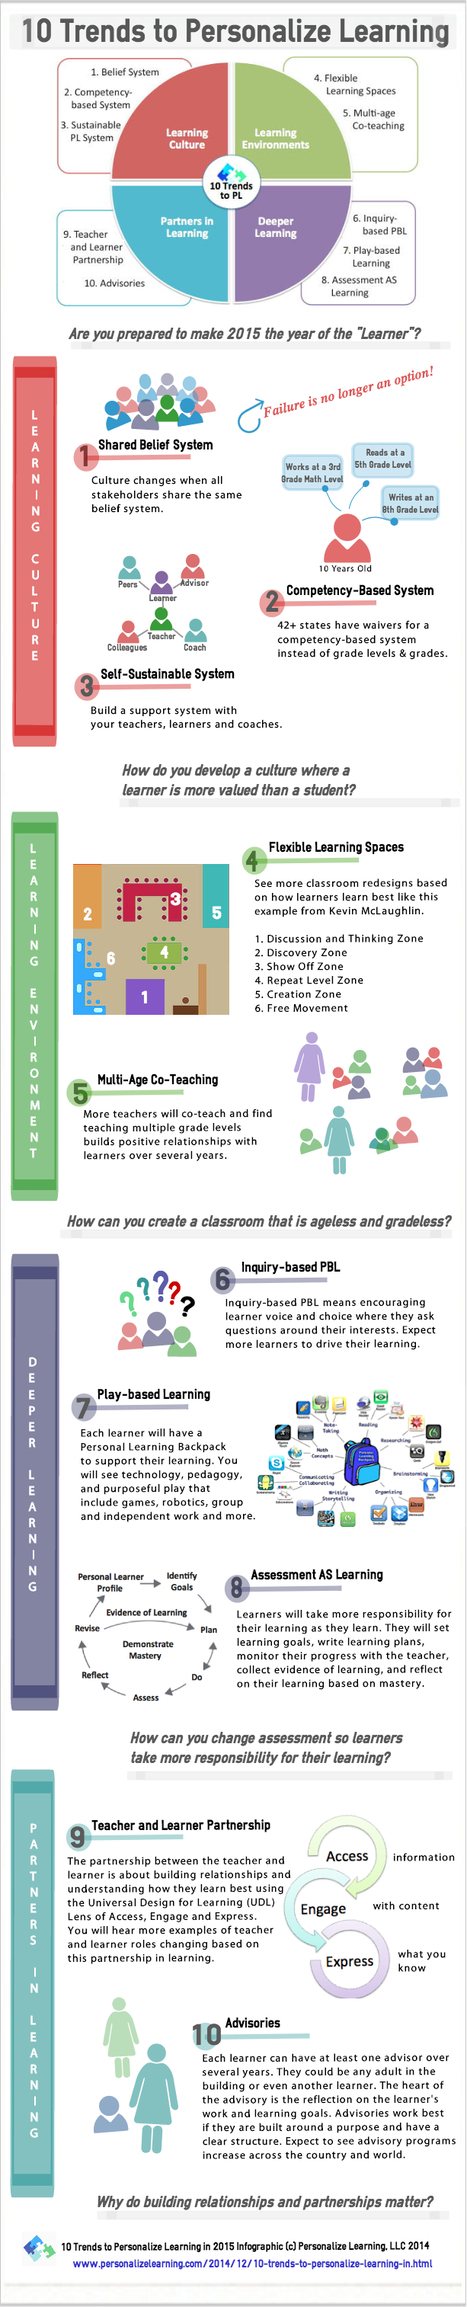 Infographic: 10 Trends to Personalize Learning in 2015 | Innovation Disruption in Education | Scoop.it